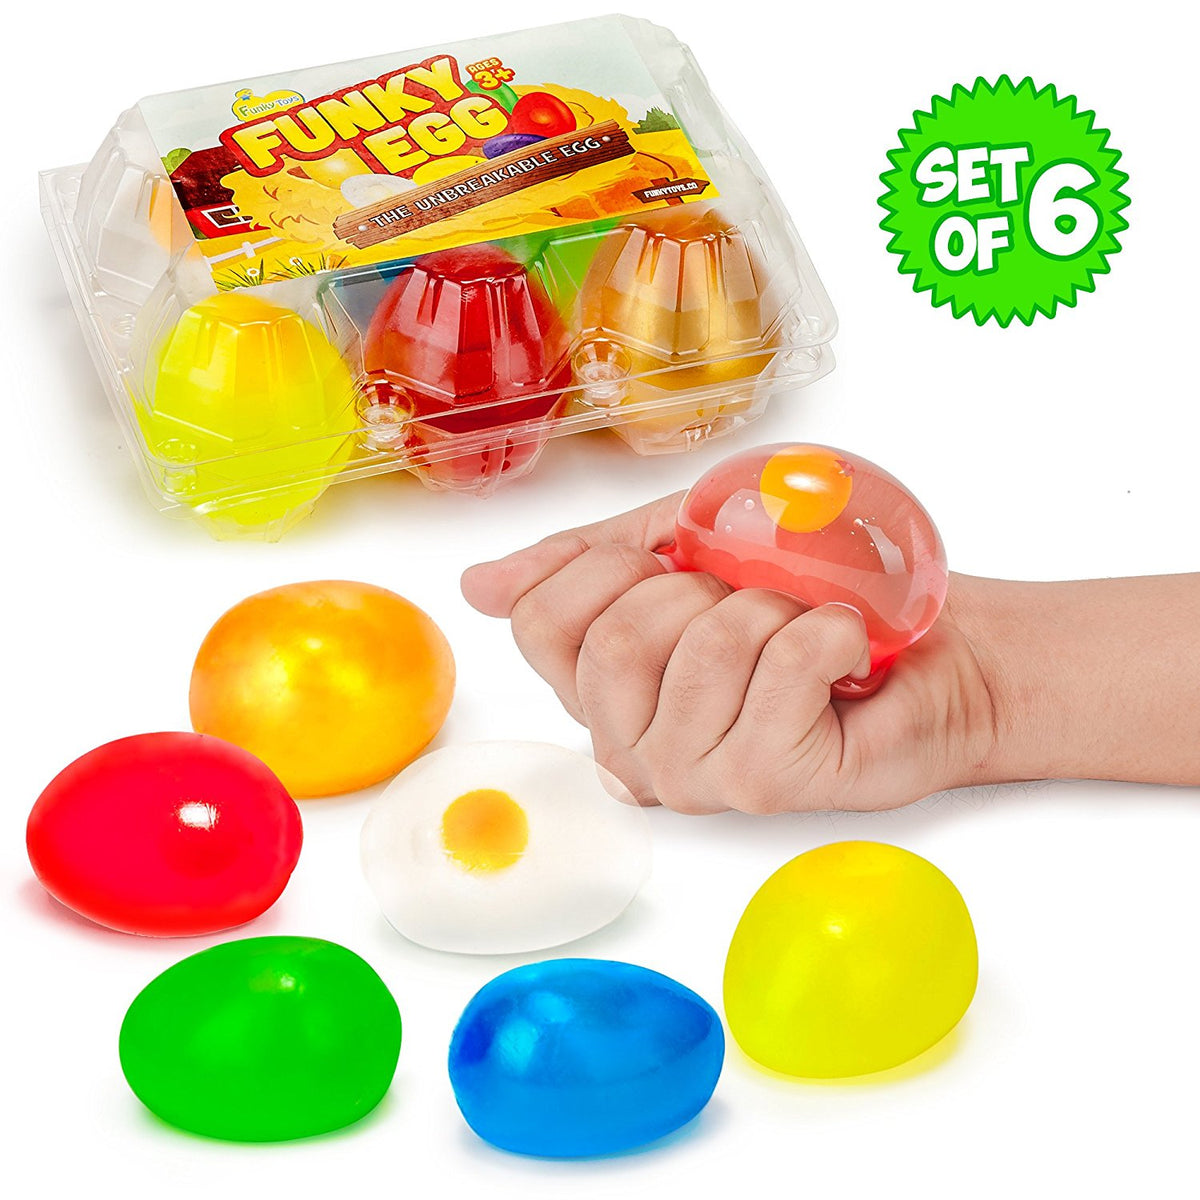 Funky Egg Splat Ball Squishy Toys | 6 Pack | Stress Relief Eggs Yolk Balls - Funky Toys